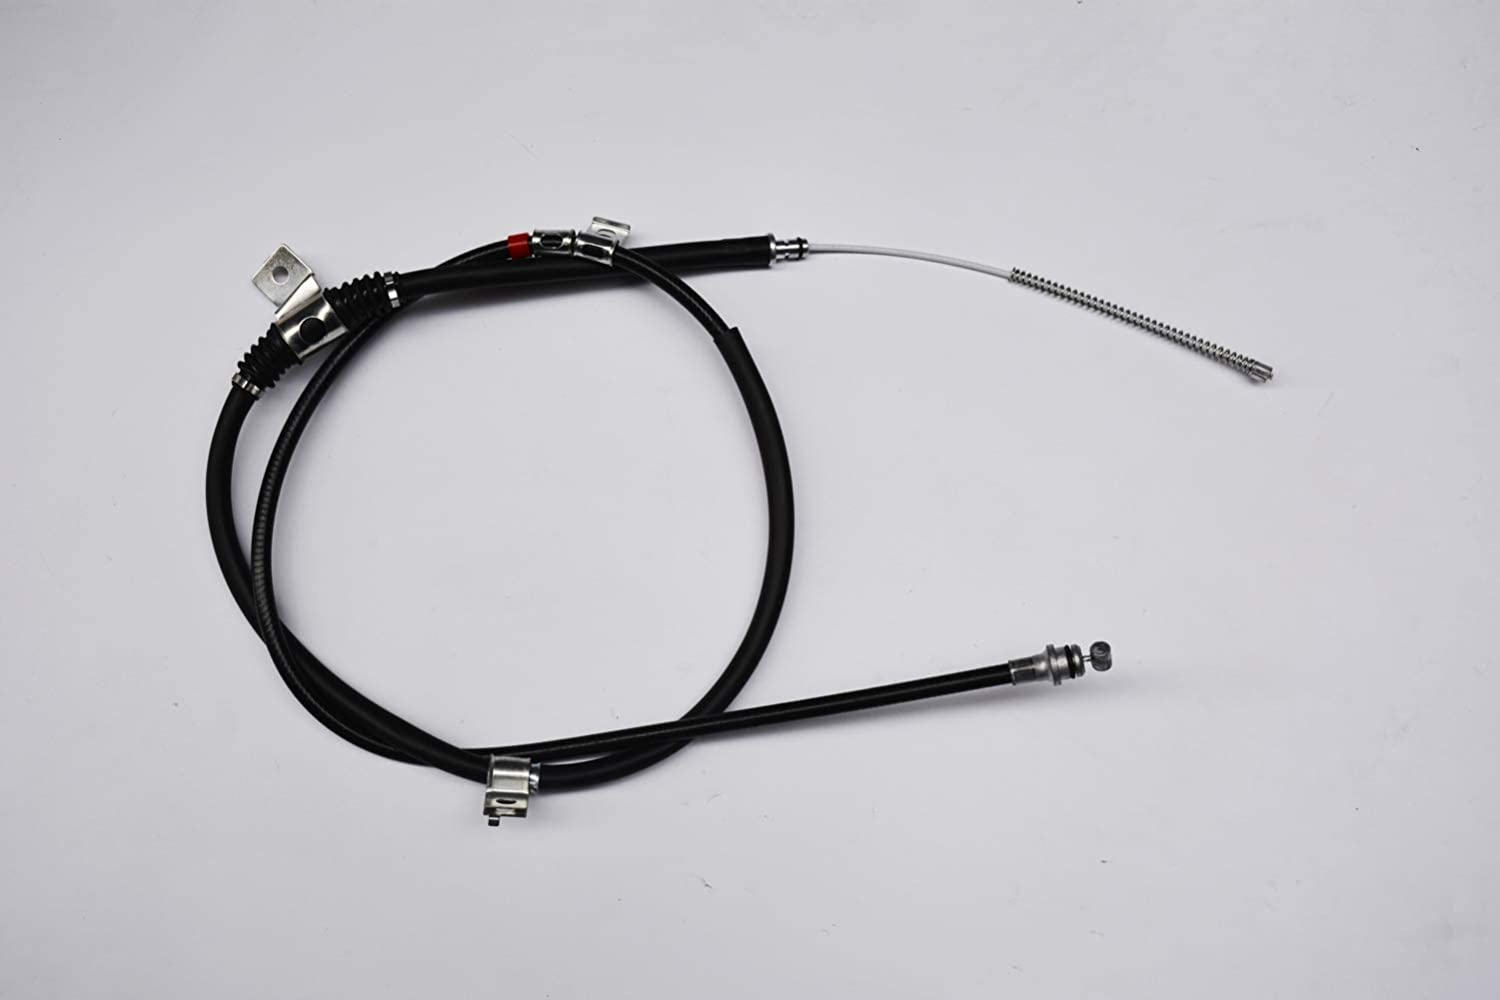 New Rear Right MR407186 Emergency Parking Hand Brake Cable Generic fit for Mitsubishi Montero Pajero 2001-2006